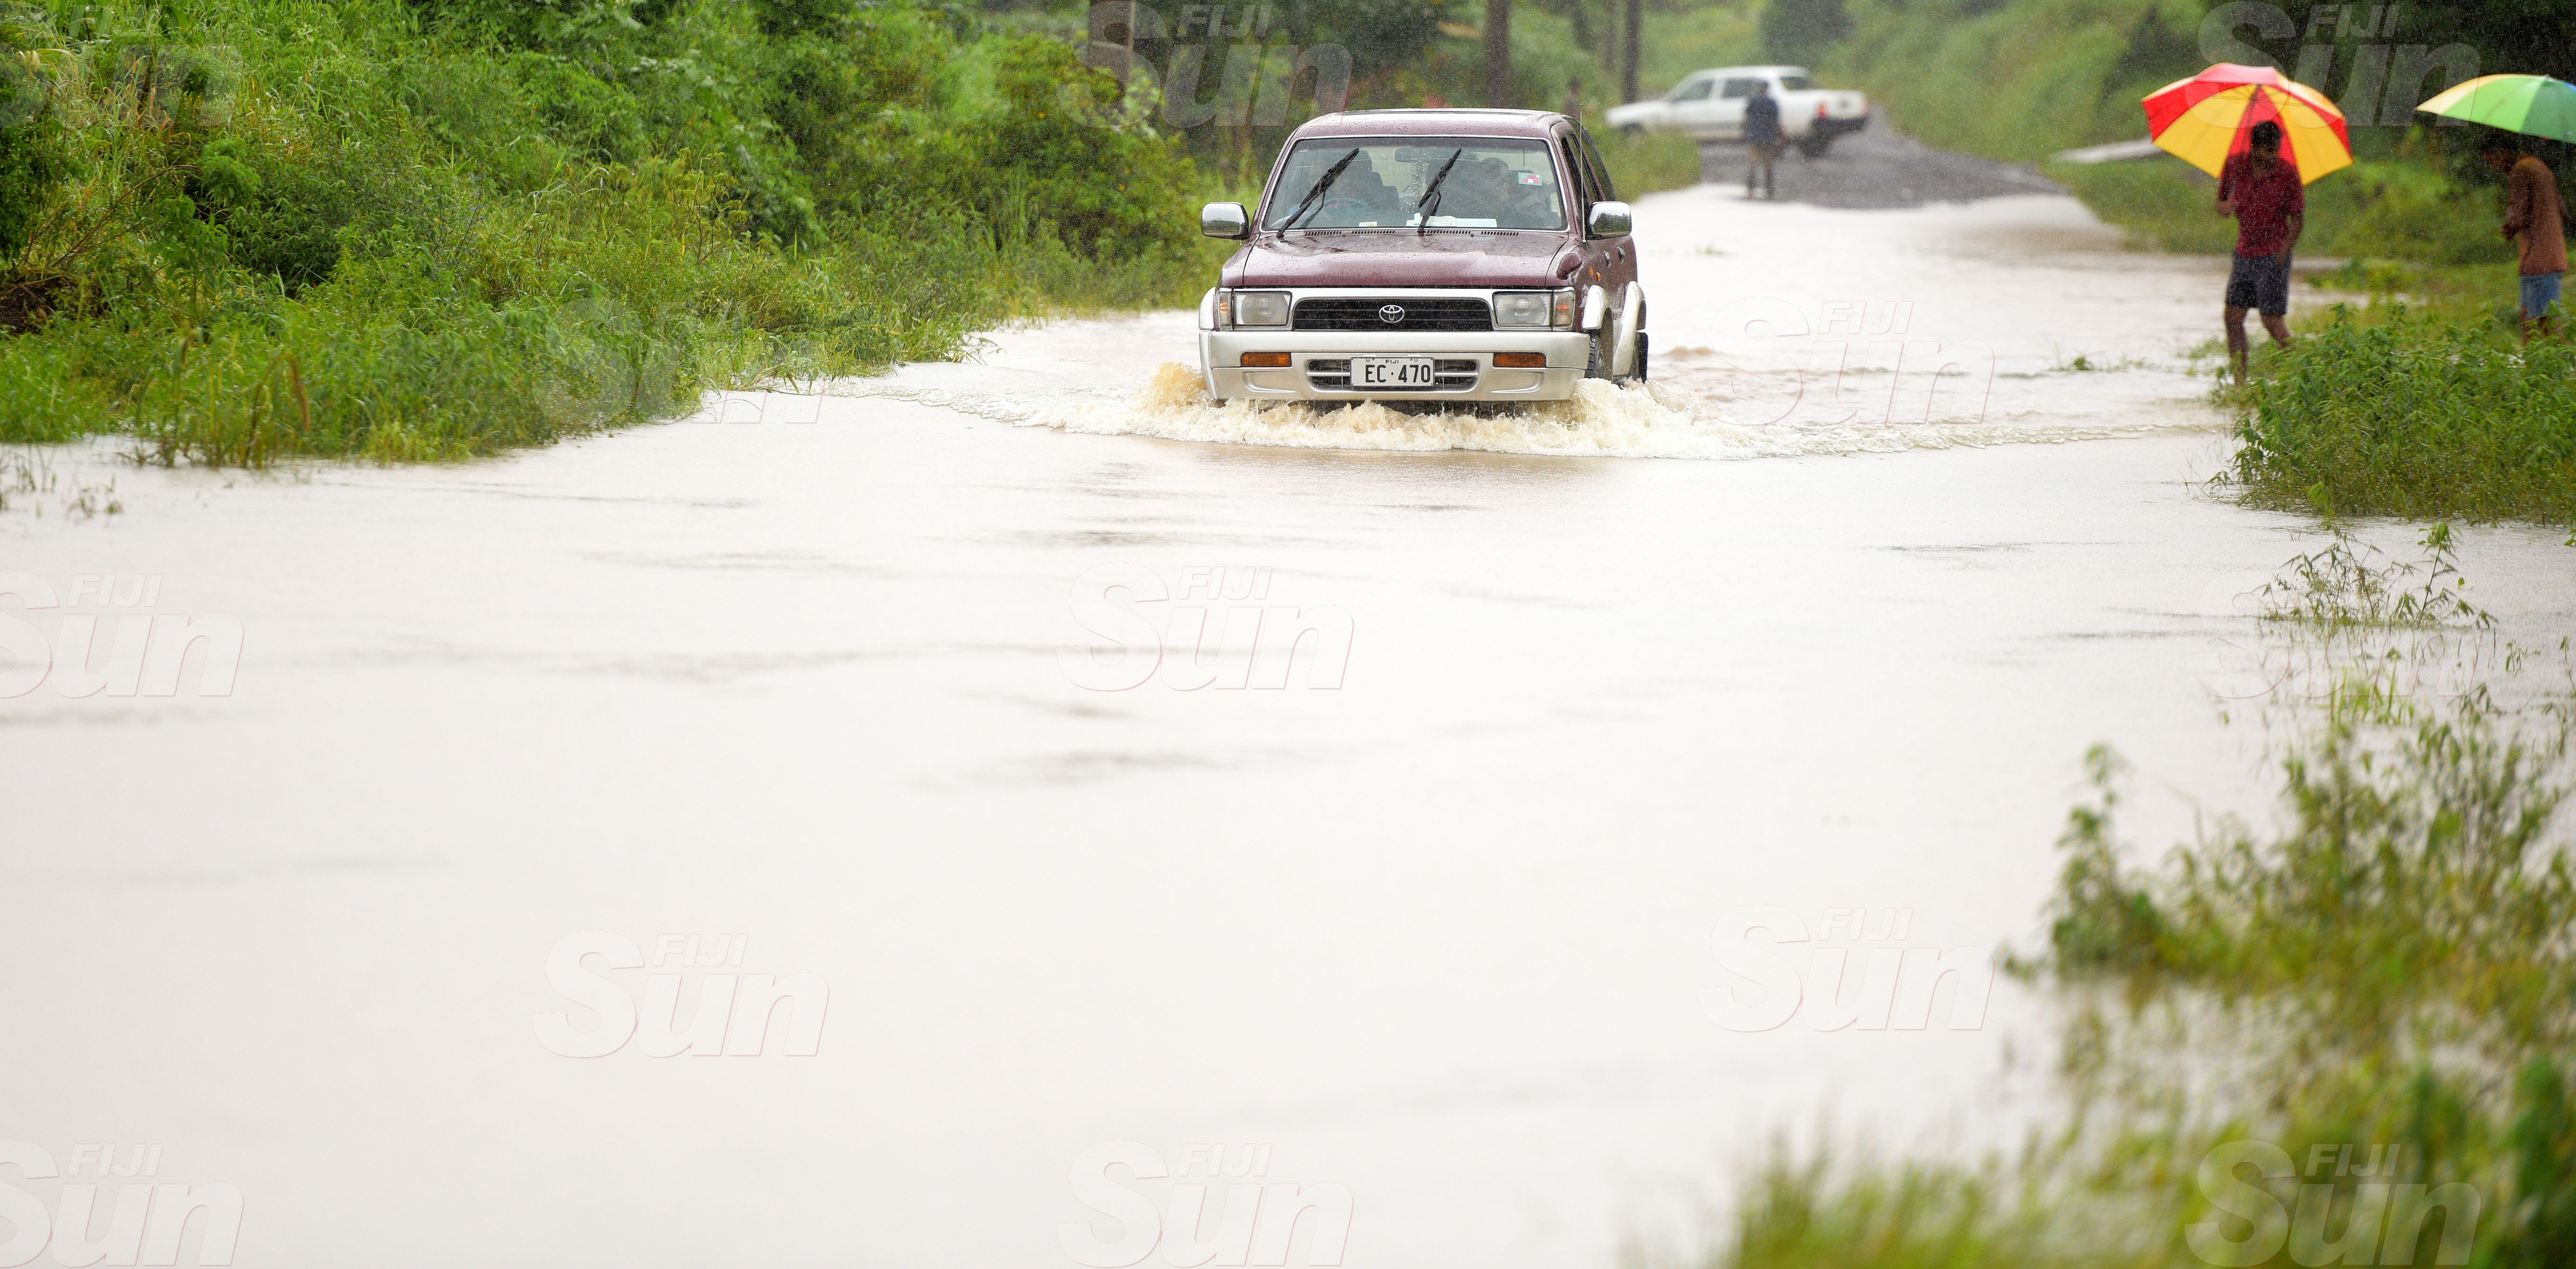 Part of the road in Korociriciri, Nausori was only accessible by four wheel drive due to flash flooding on March 20, 2020. Photo: Ronald Kumar.